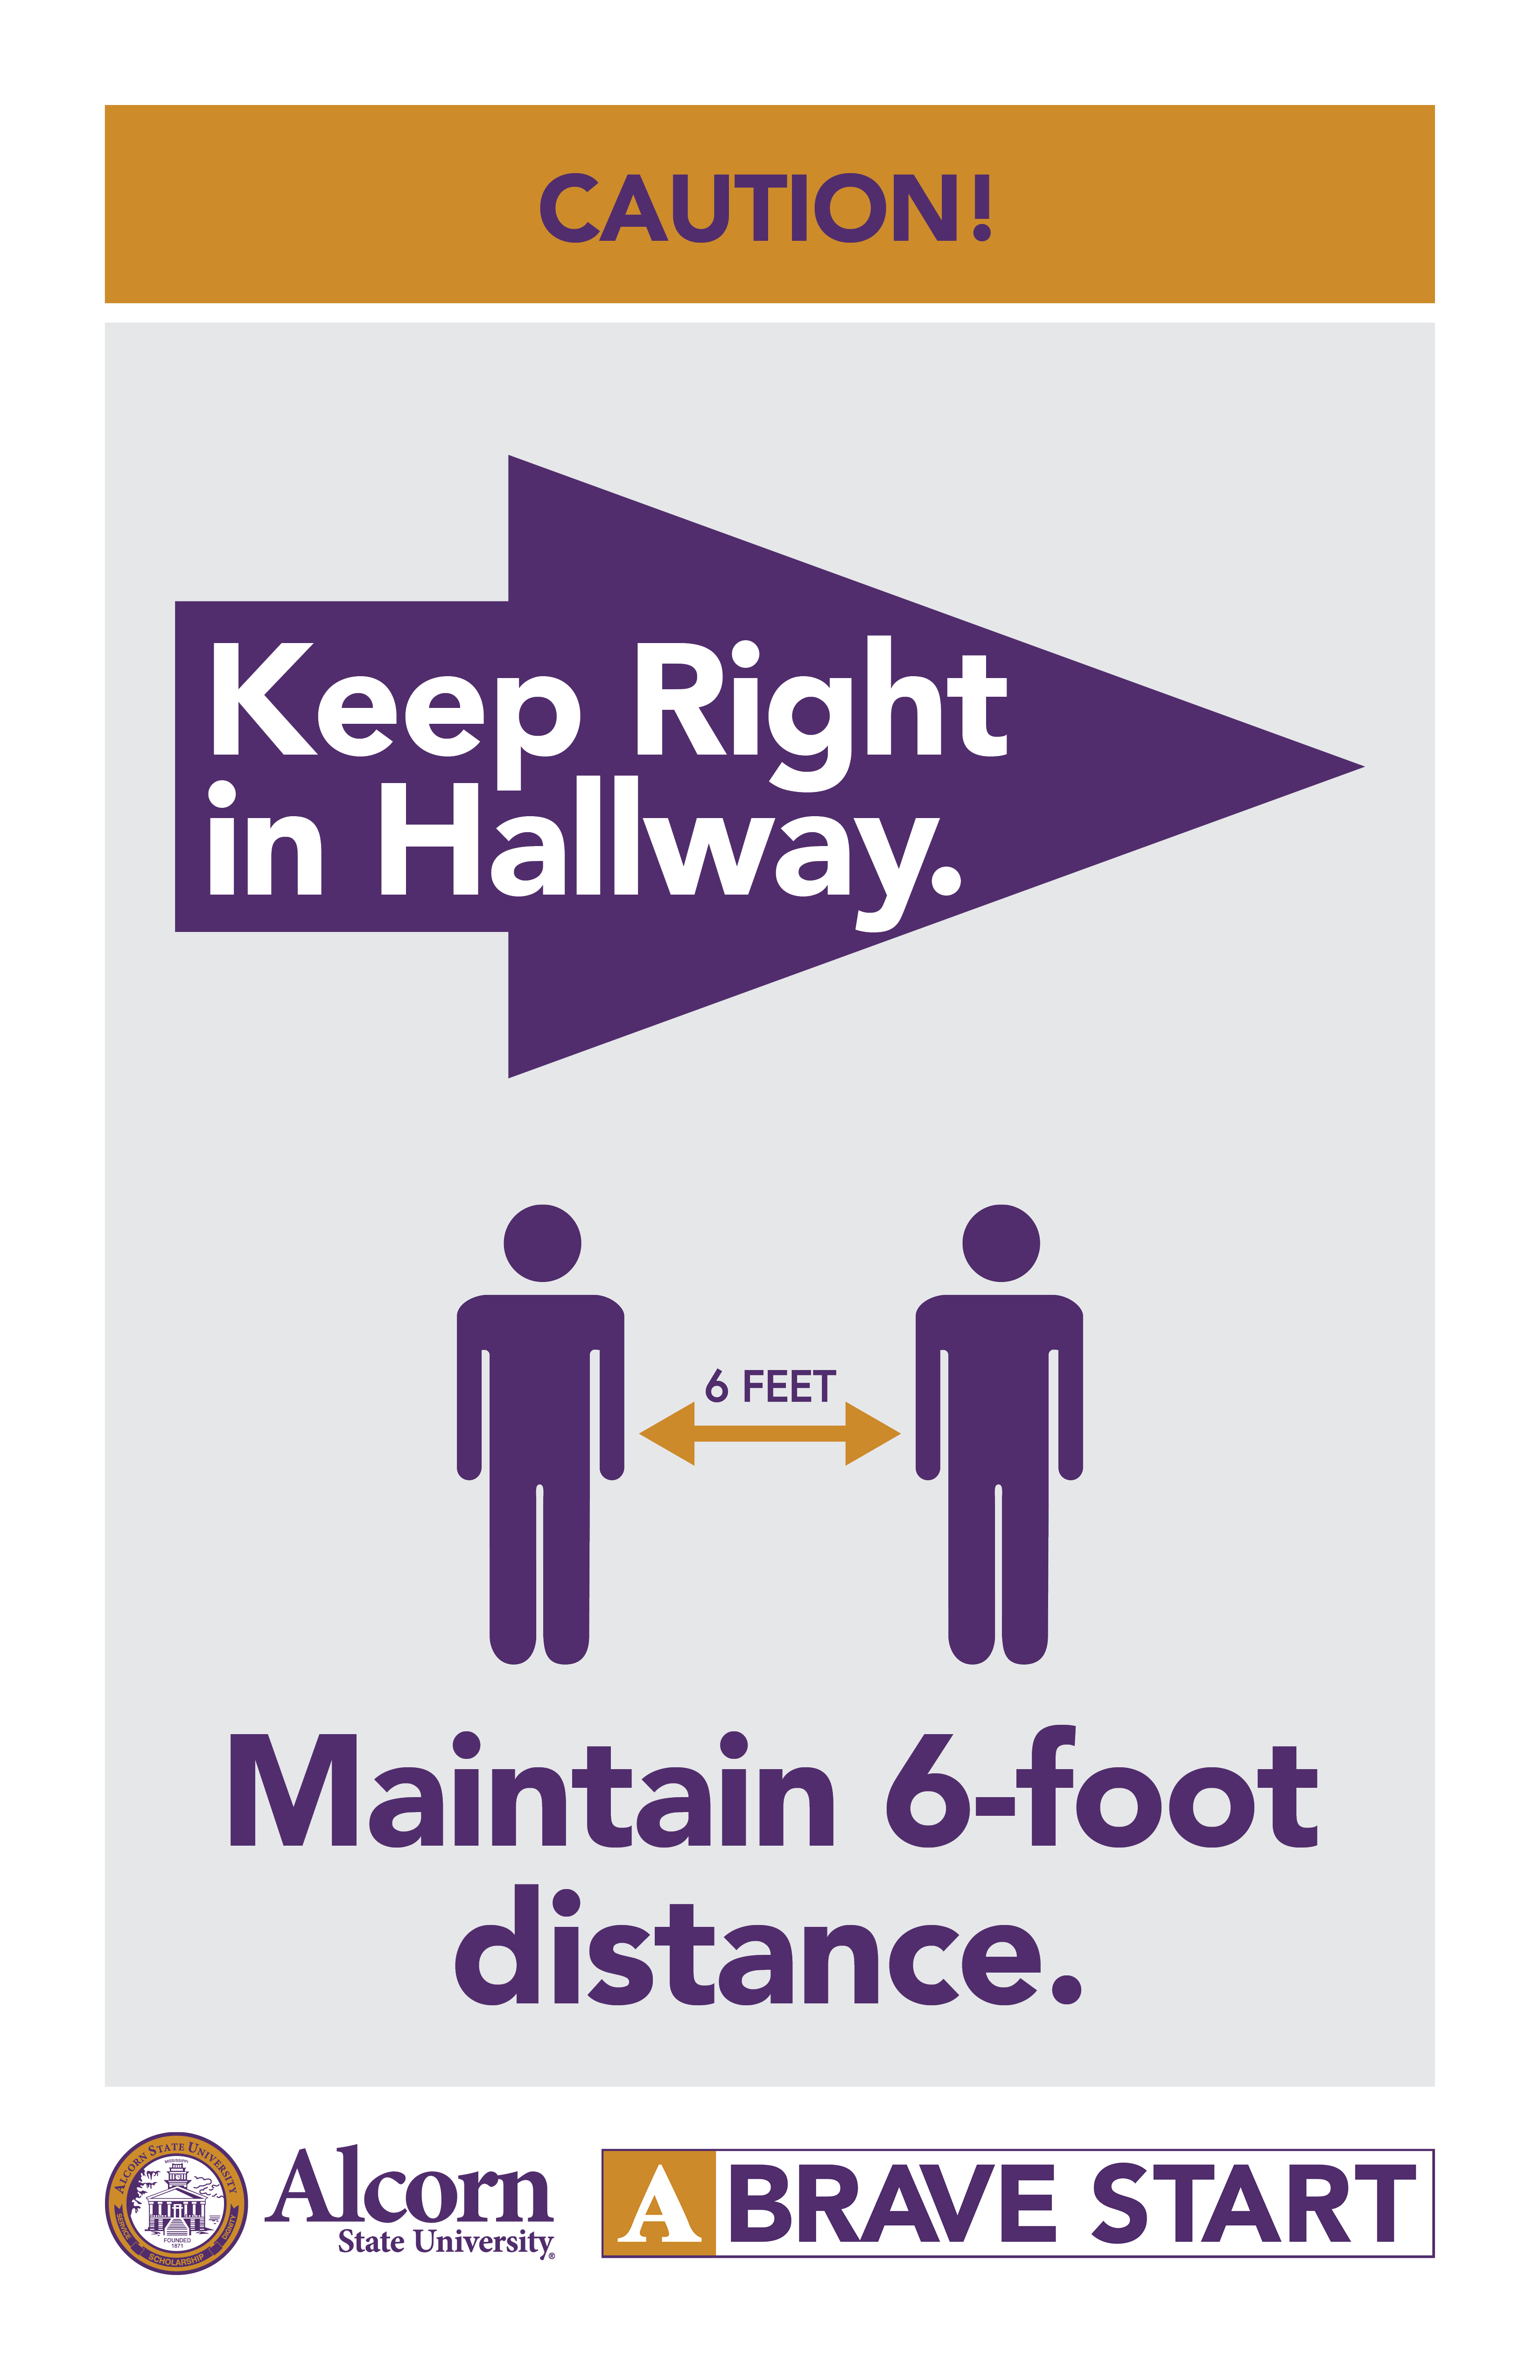 CAUTION! (Picture of an arrow pointing to the right) Keep Right in Hallway. (Picture of two people standing six feet apart) Maintain 6-foot distance. (Alcorn logo mark. A Brave Start logo mark.)